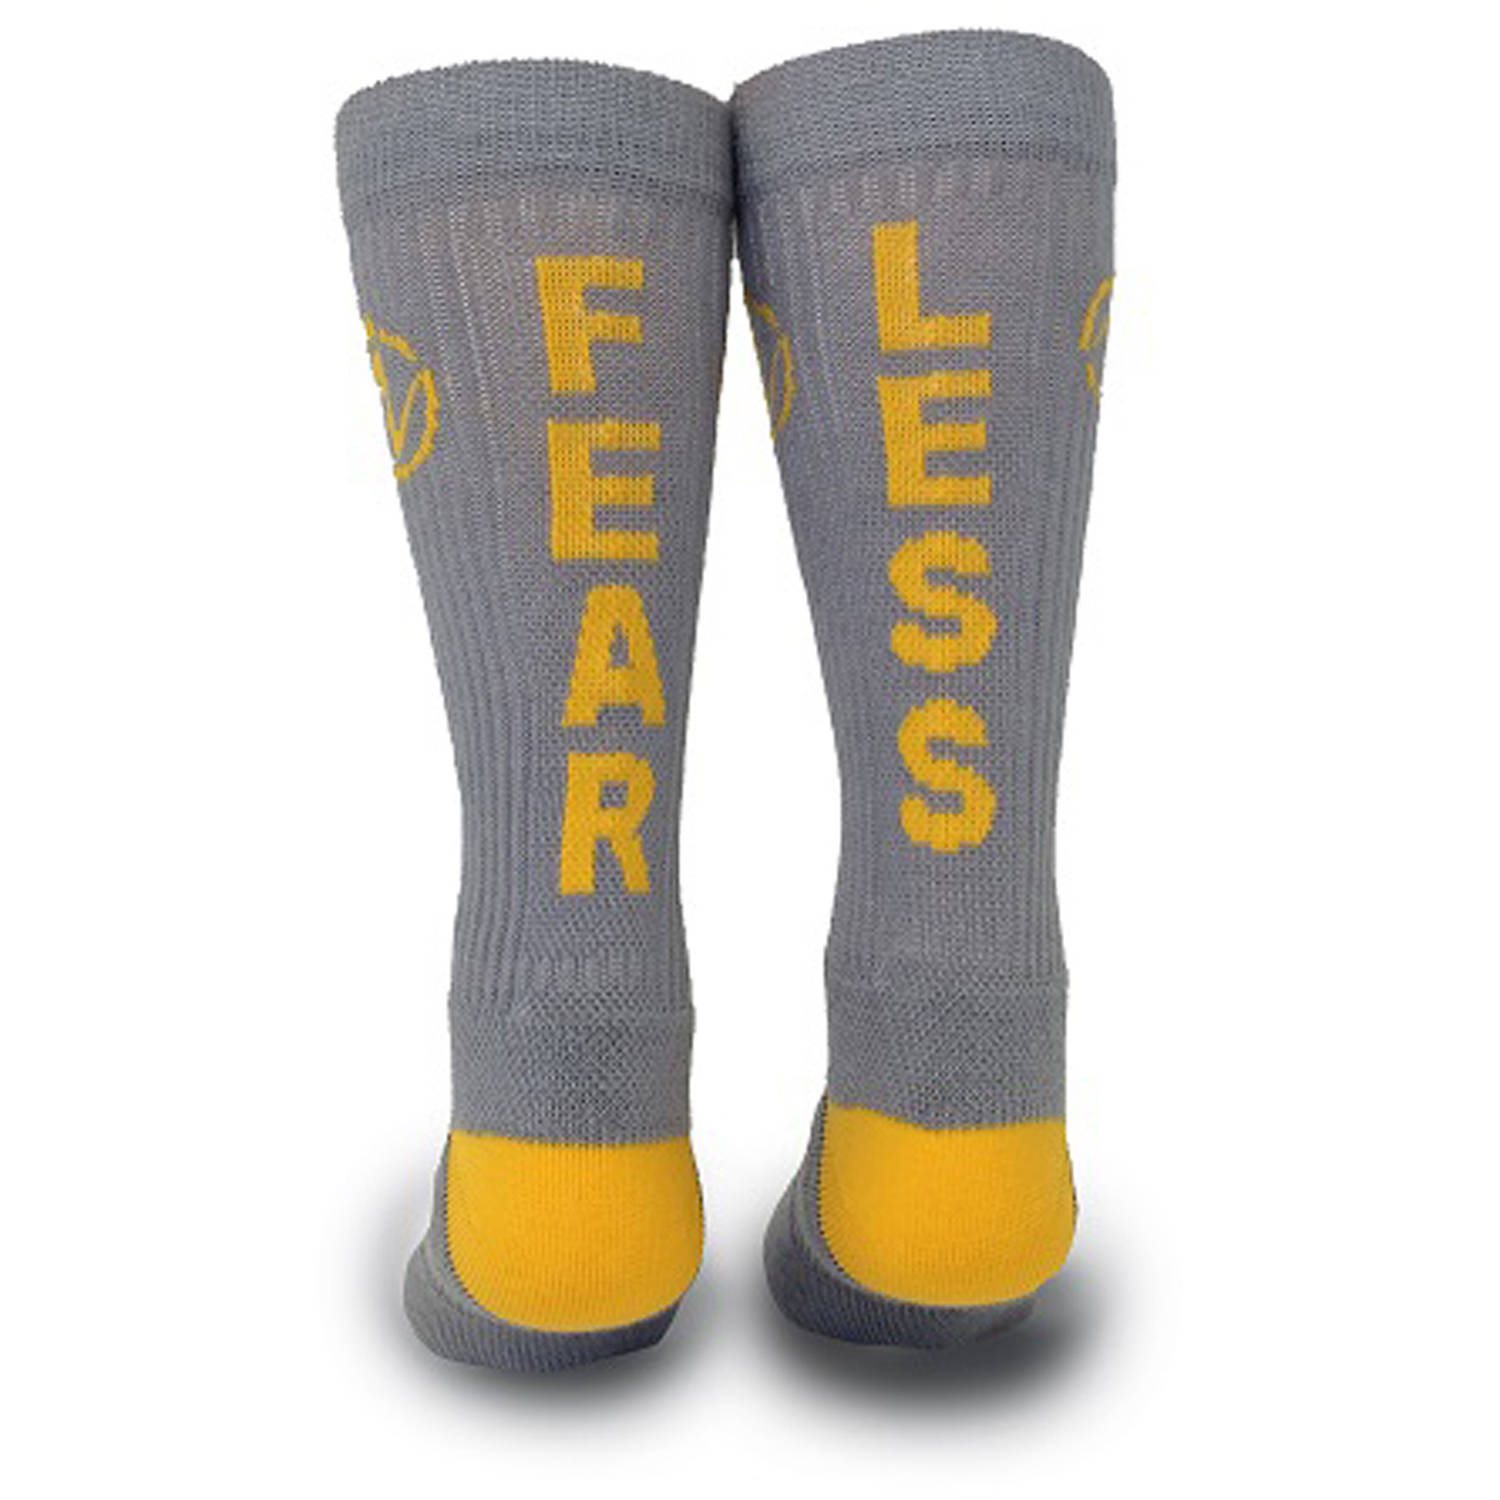 Inspyr Socks Fear Less Athletic Lifestyle Crew Sock